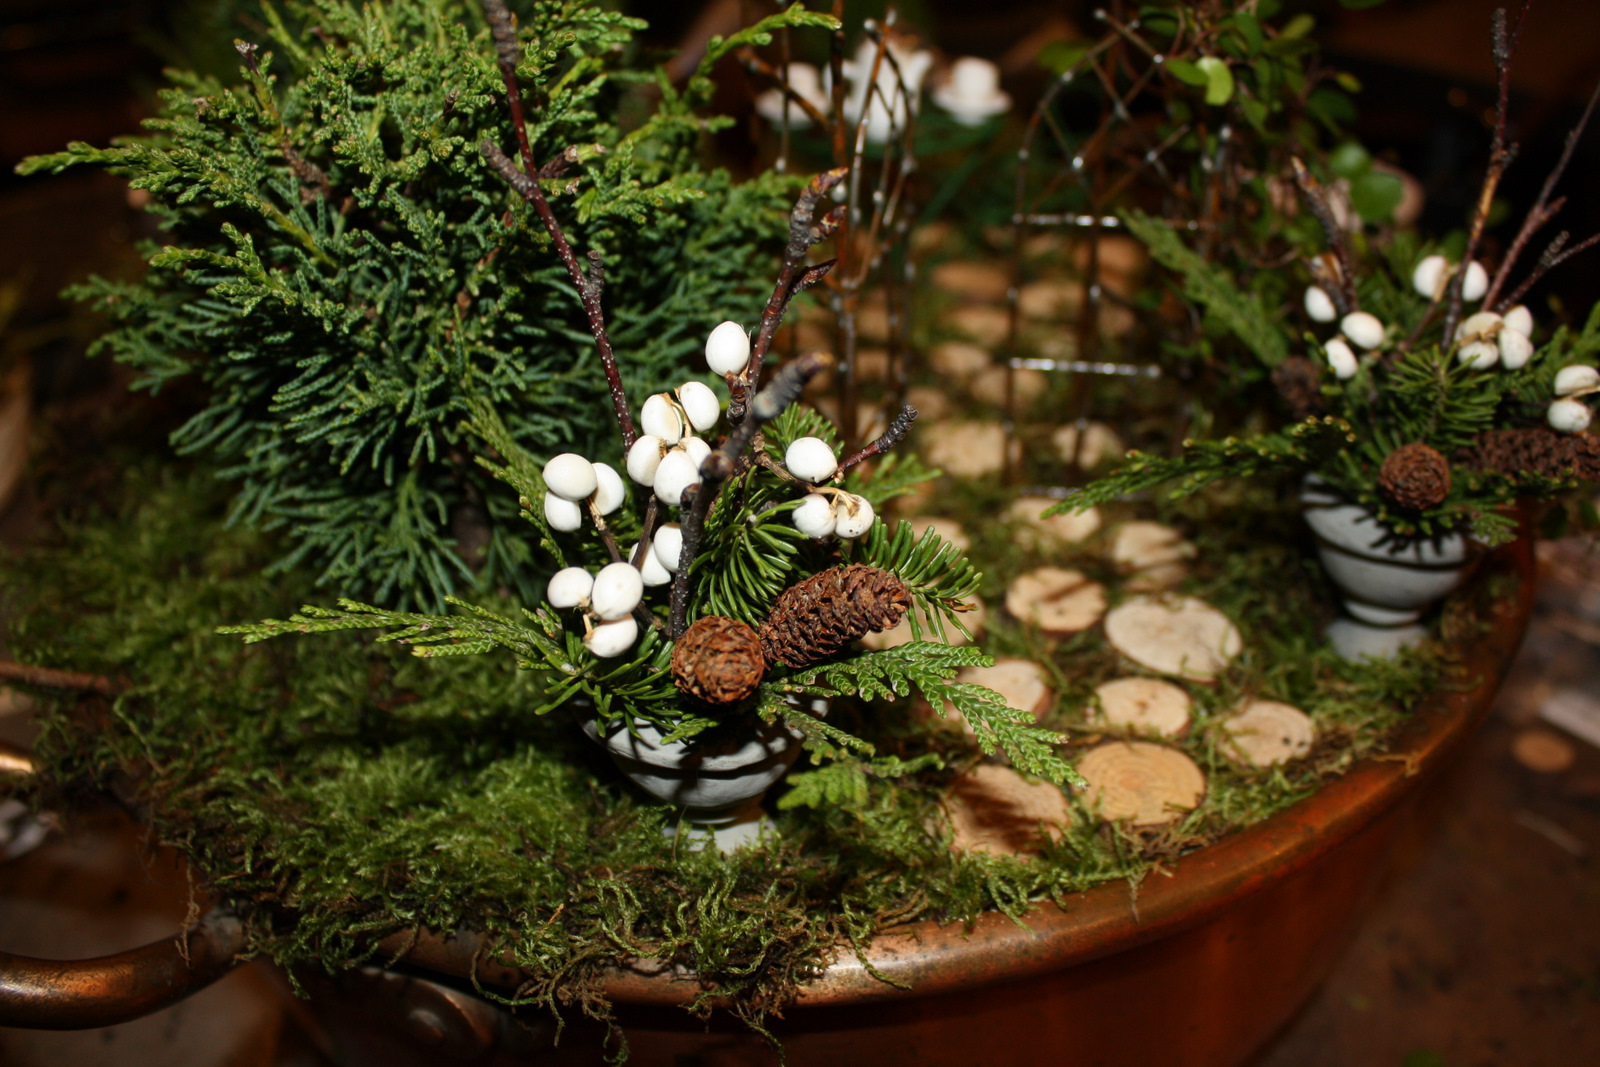 Teeny Tiny Woodland Winter Mixed Containers & A New Piece From Diana